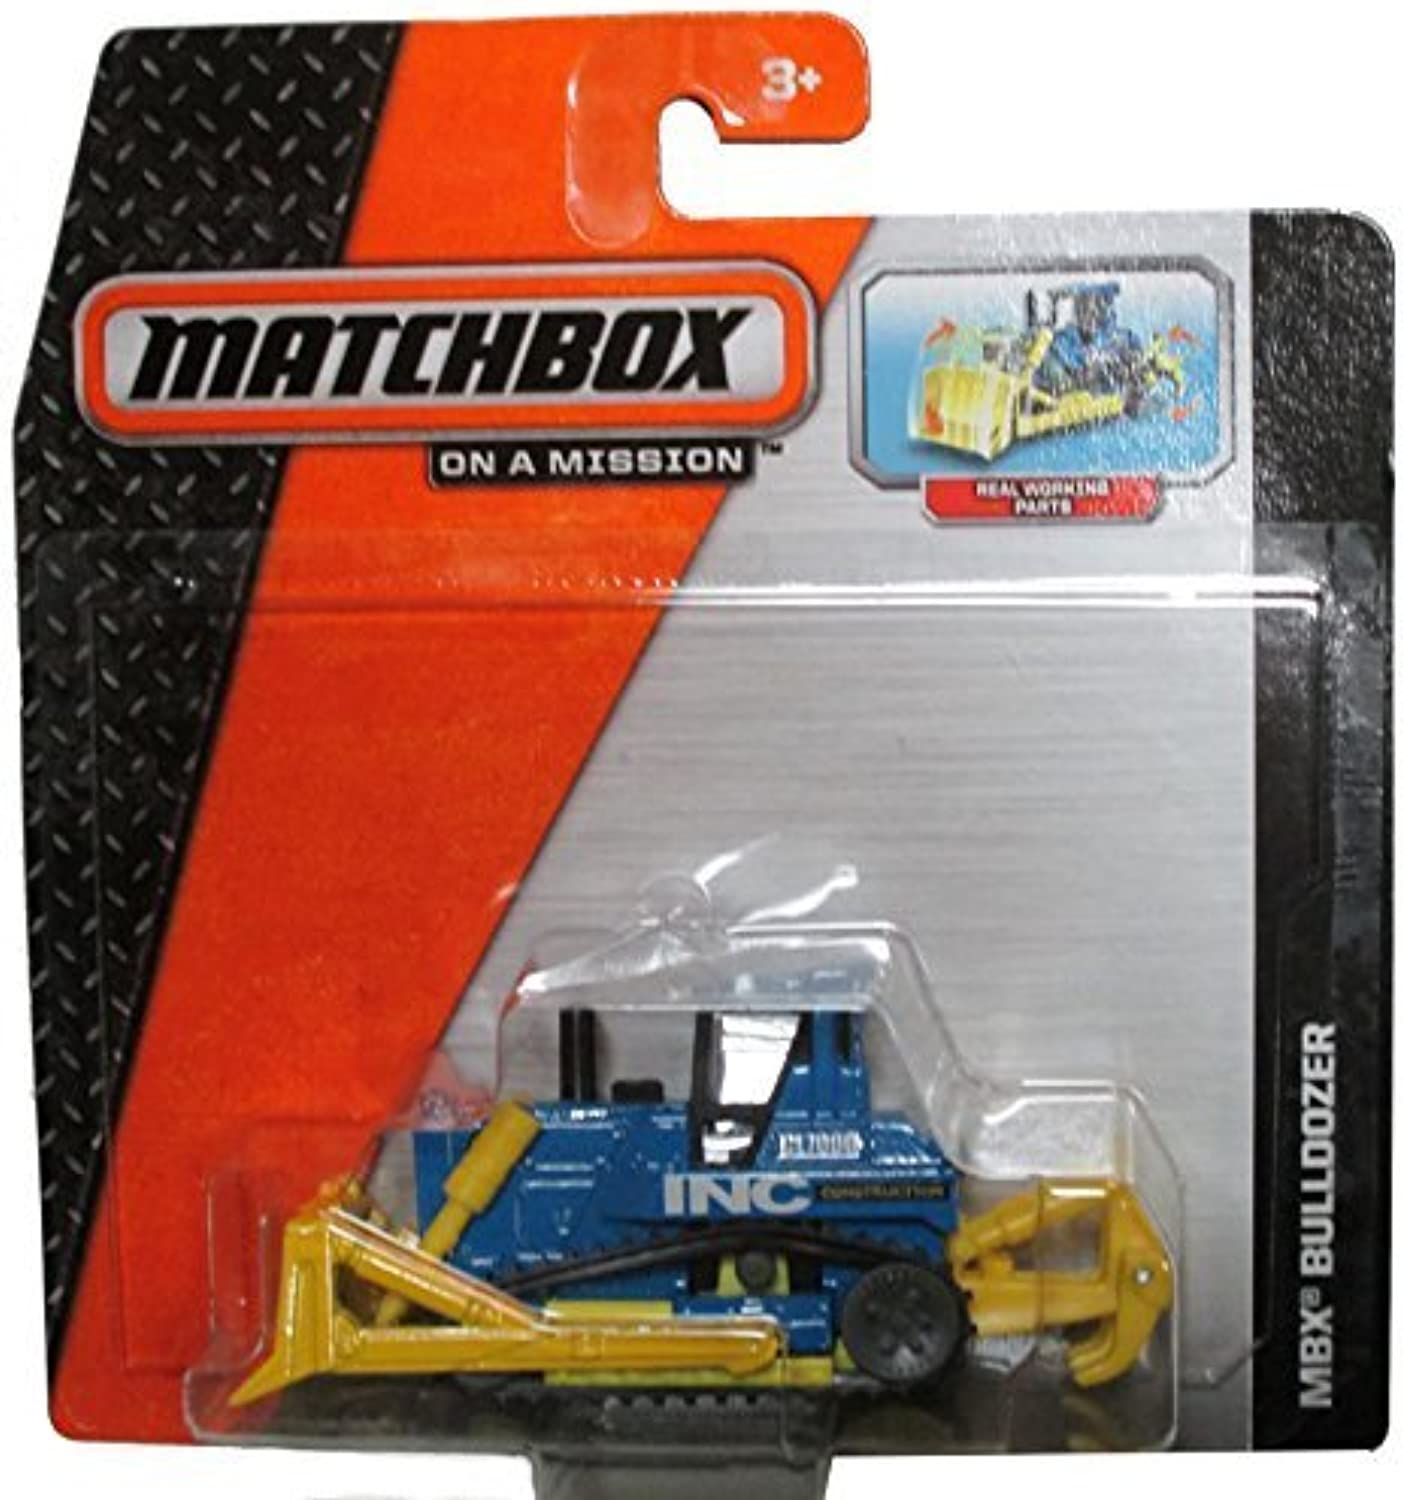 Matchbox 2014 On a Mission  Yellow bluee Mbx Bulldozer  Has Real Working Parts by Matchbox